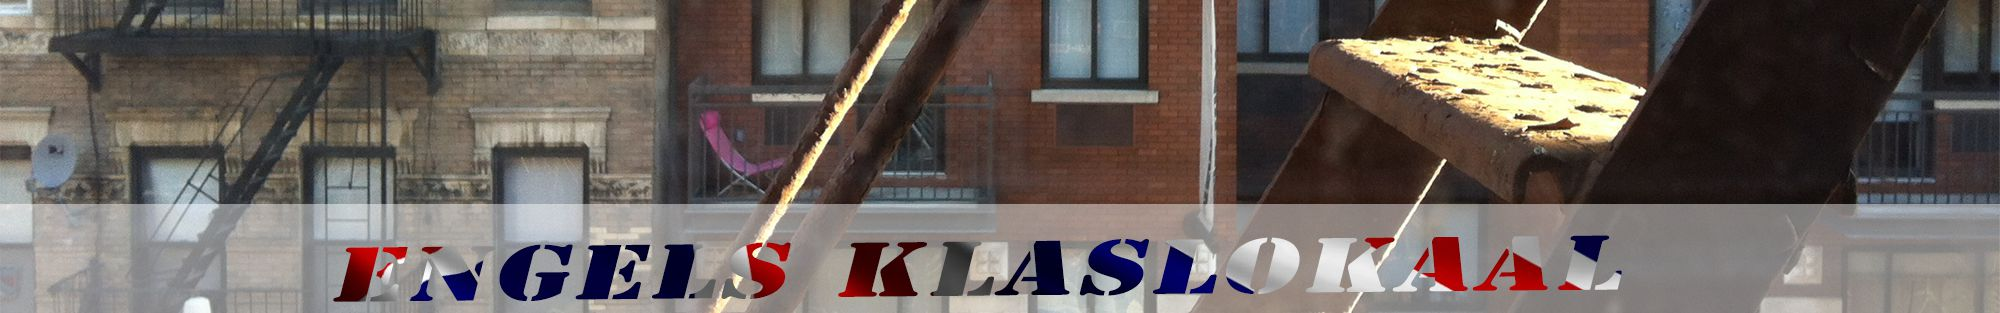 brandtrap in new york header engels klaslokaal